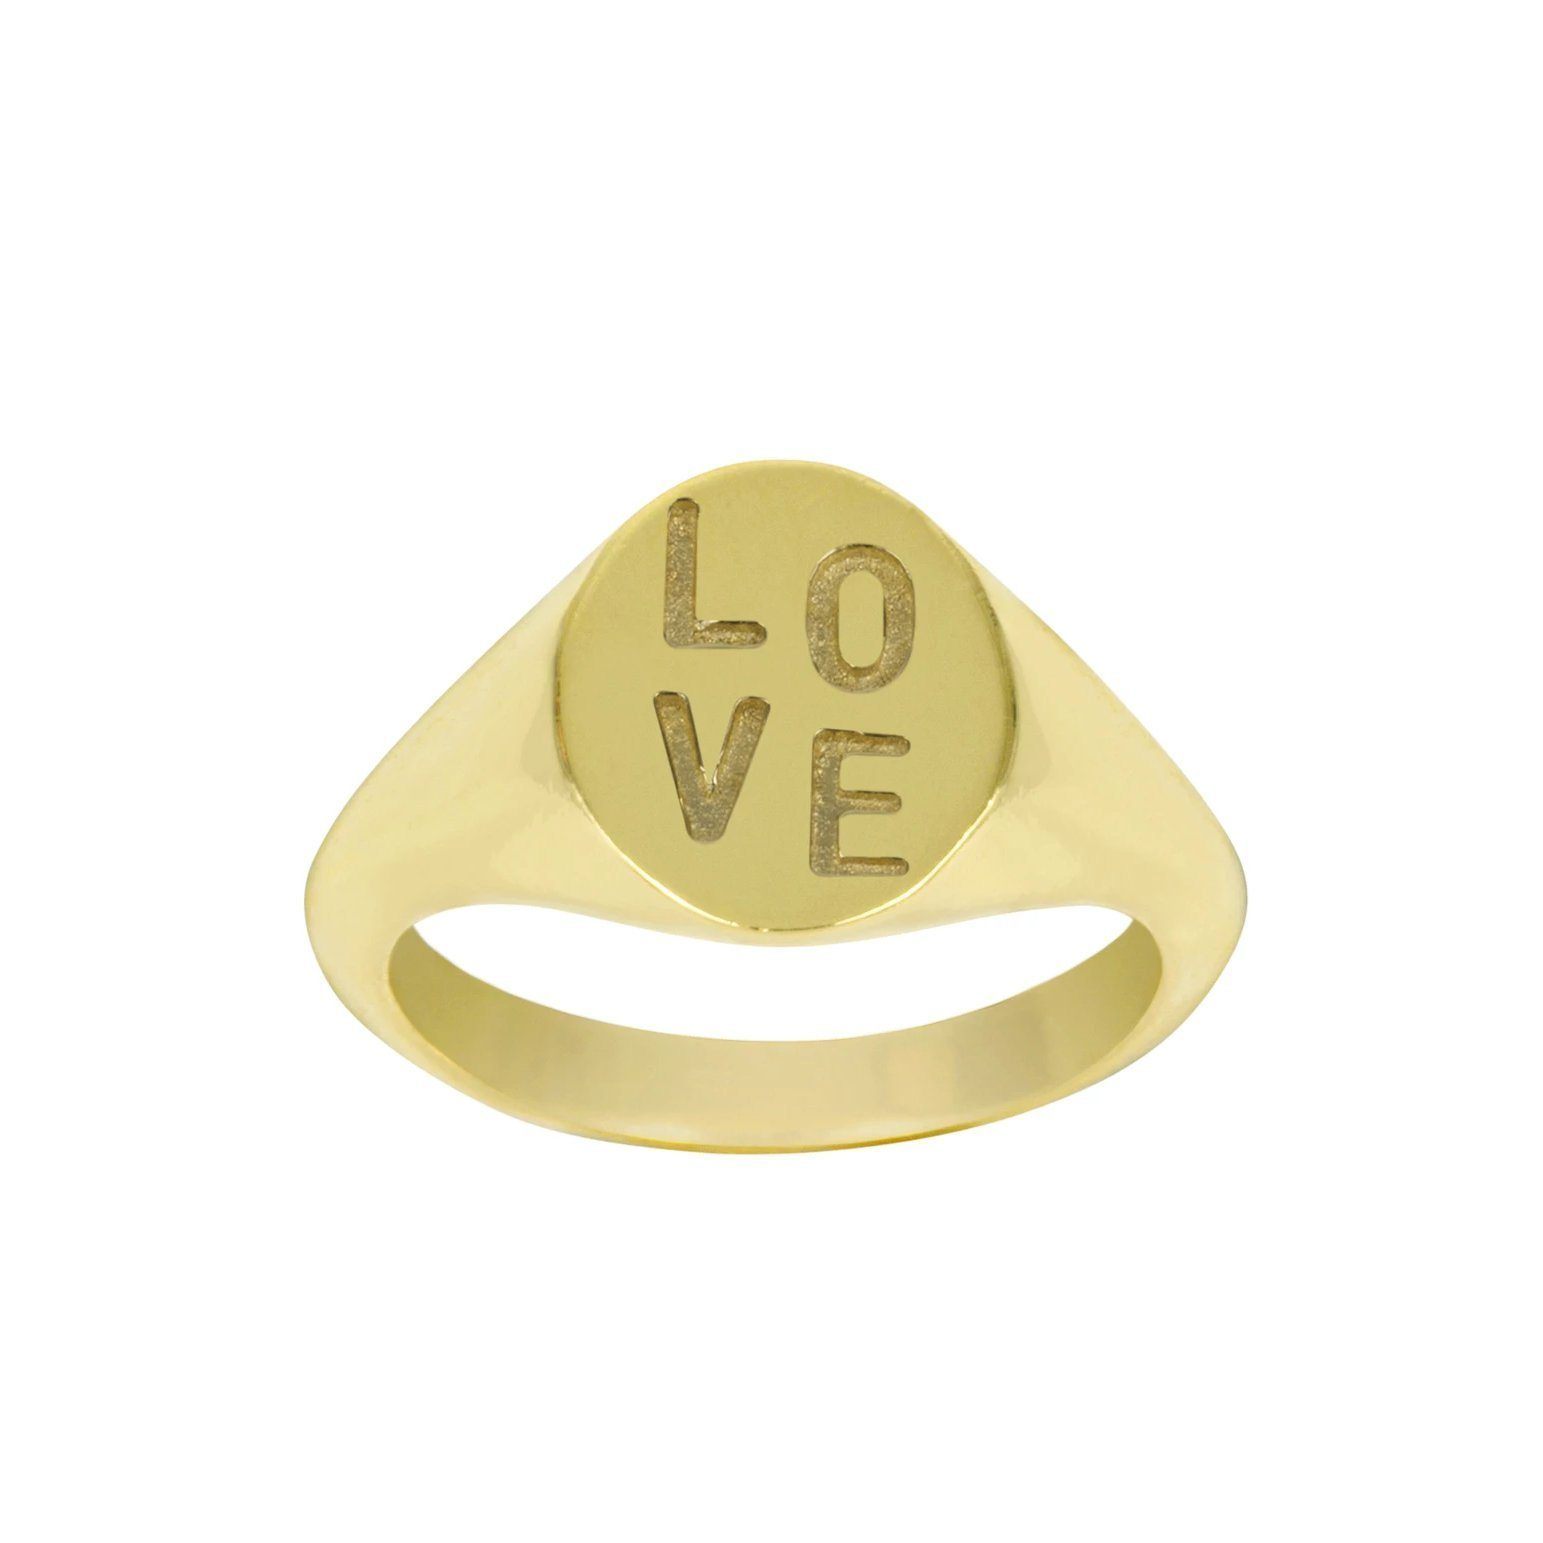 Up close image of the gold Love Signet Ring with writing.